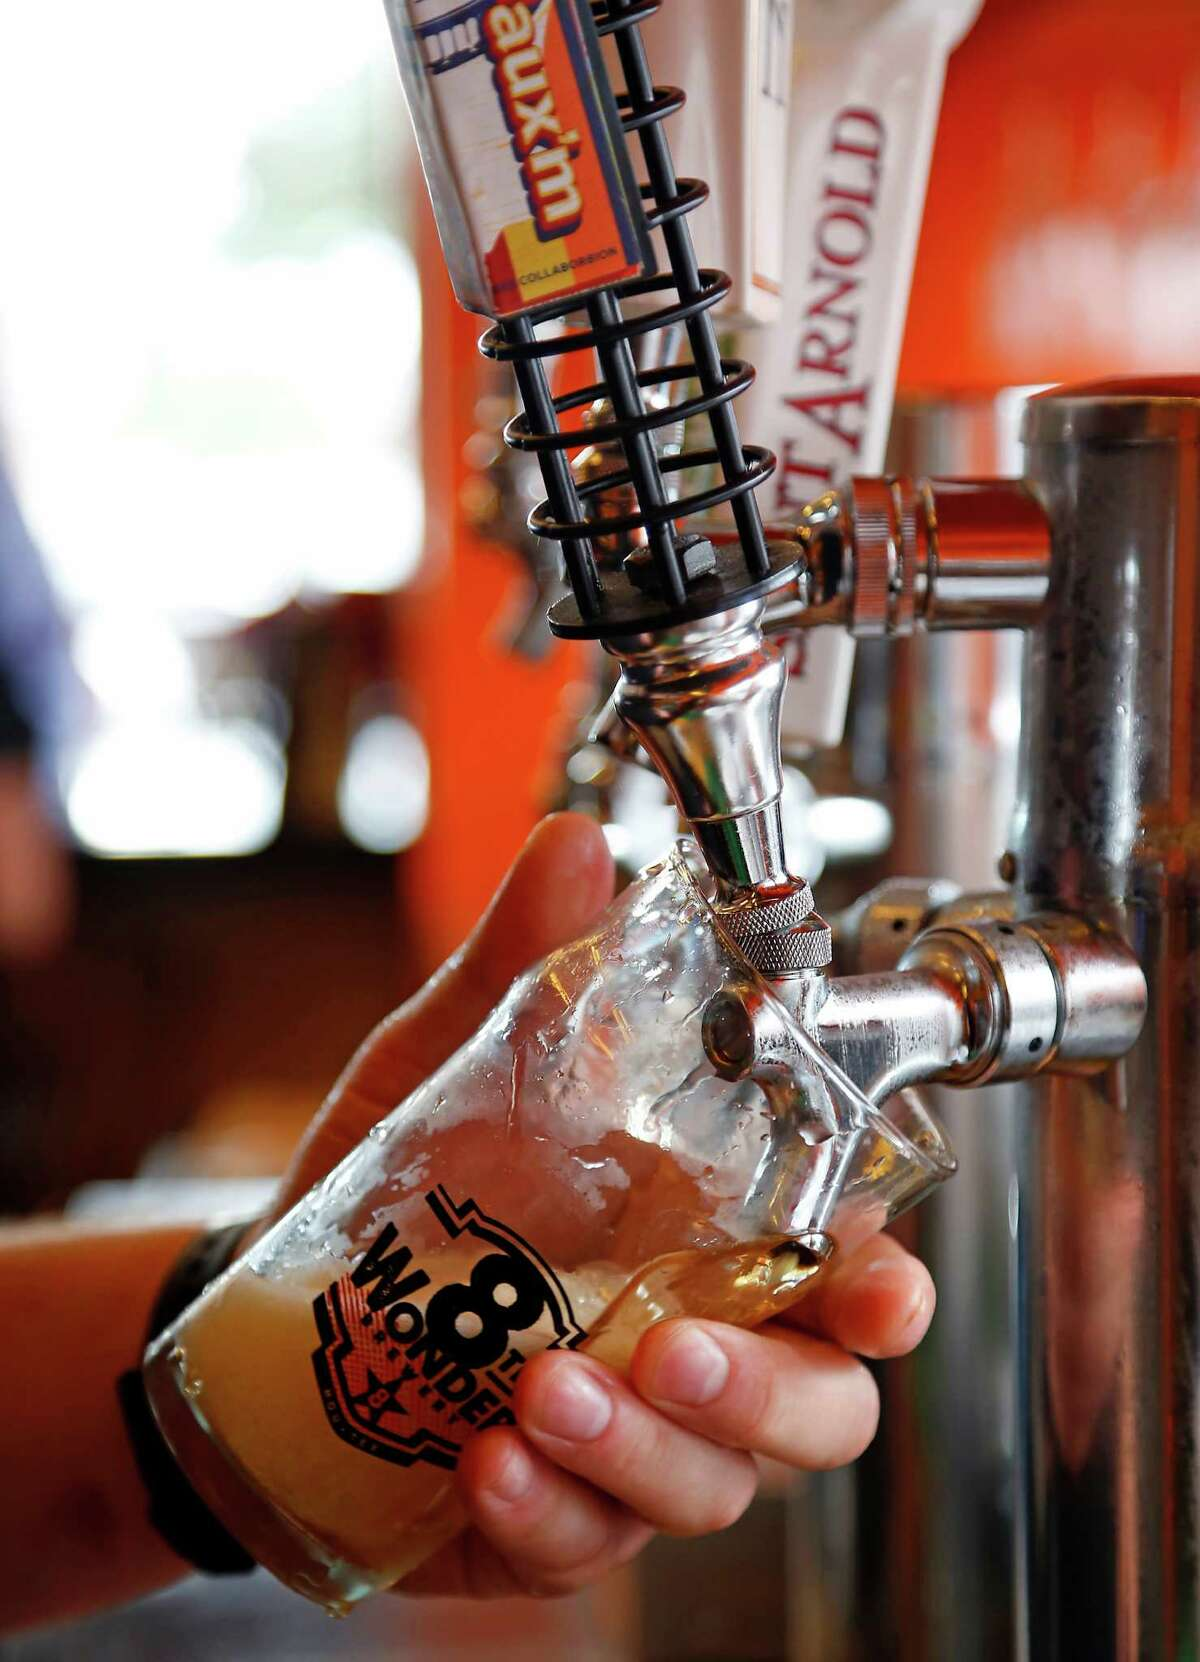 Production breweries can sell a limited amount on site as long as it is poured and consumed there. New legislation would let patrons buy beer that they could take away and drink later.